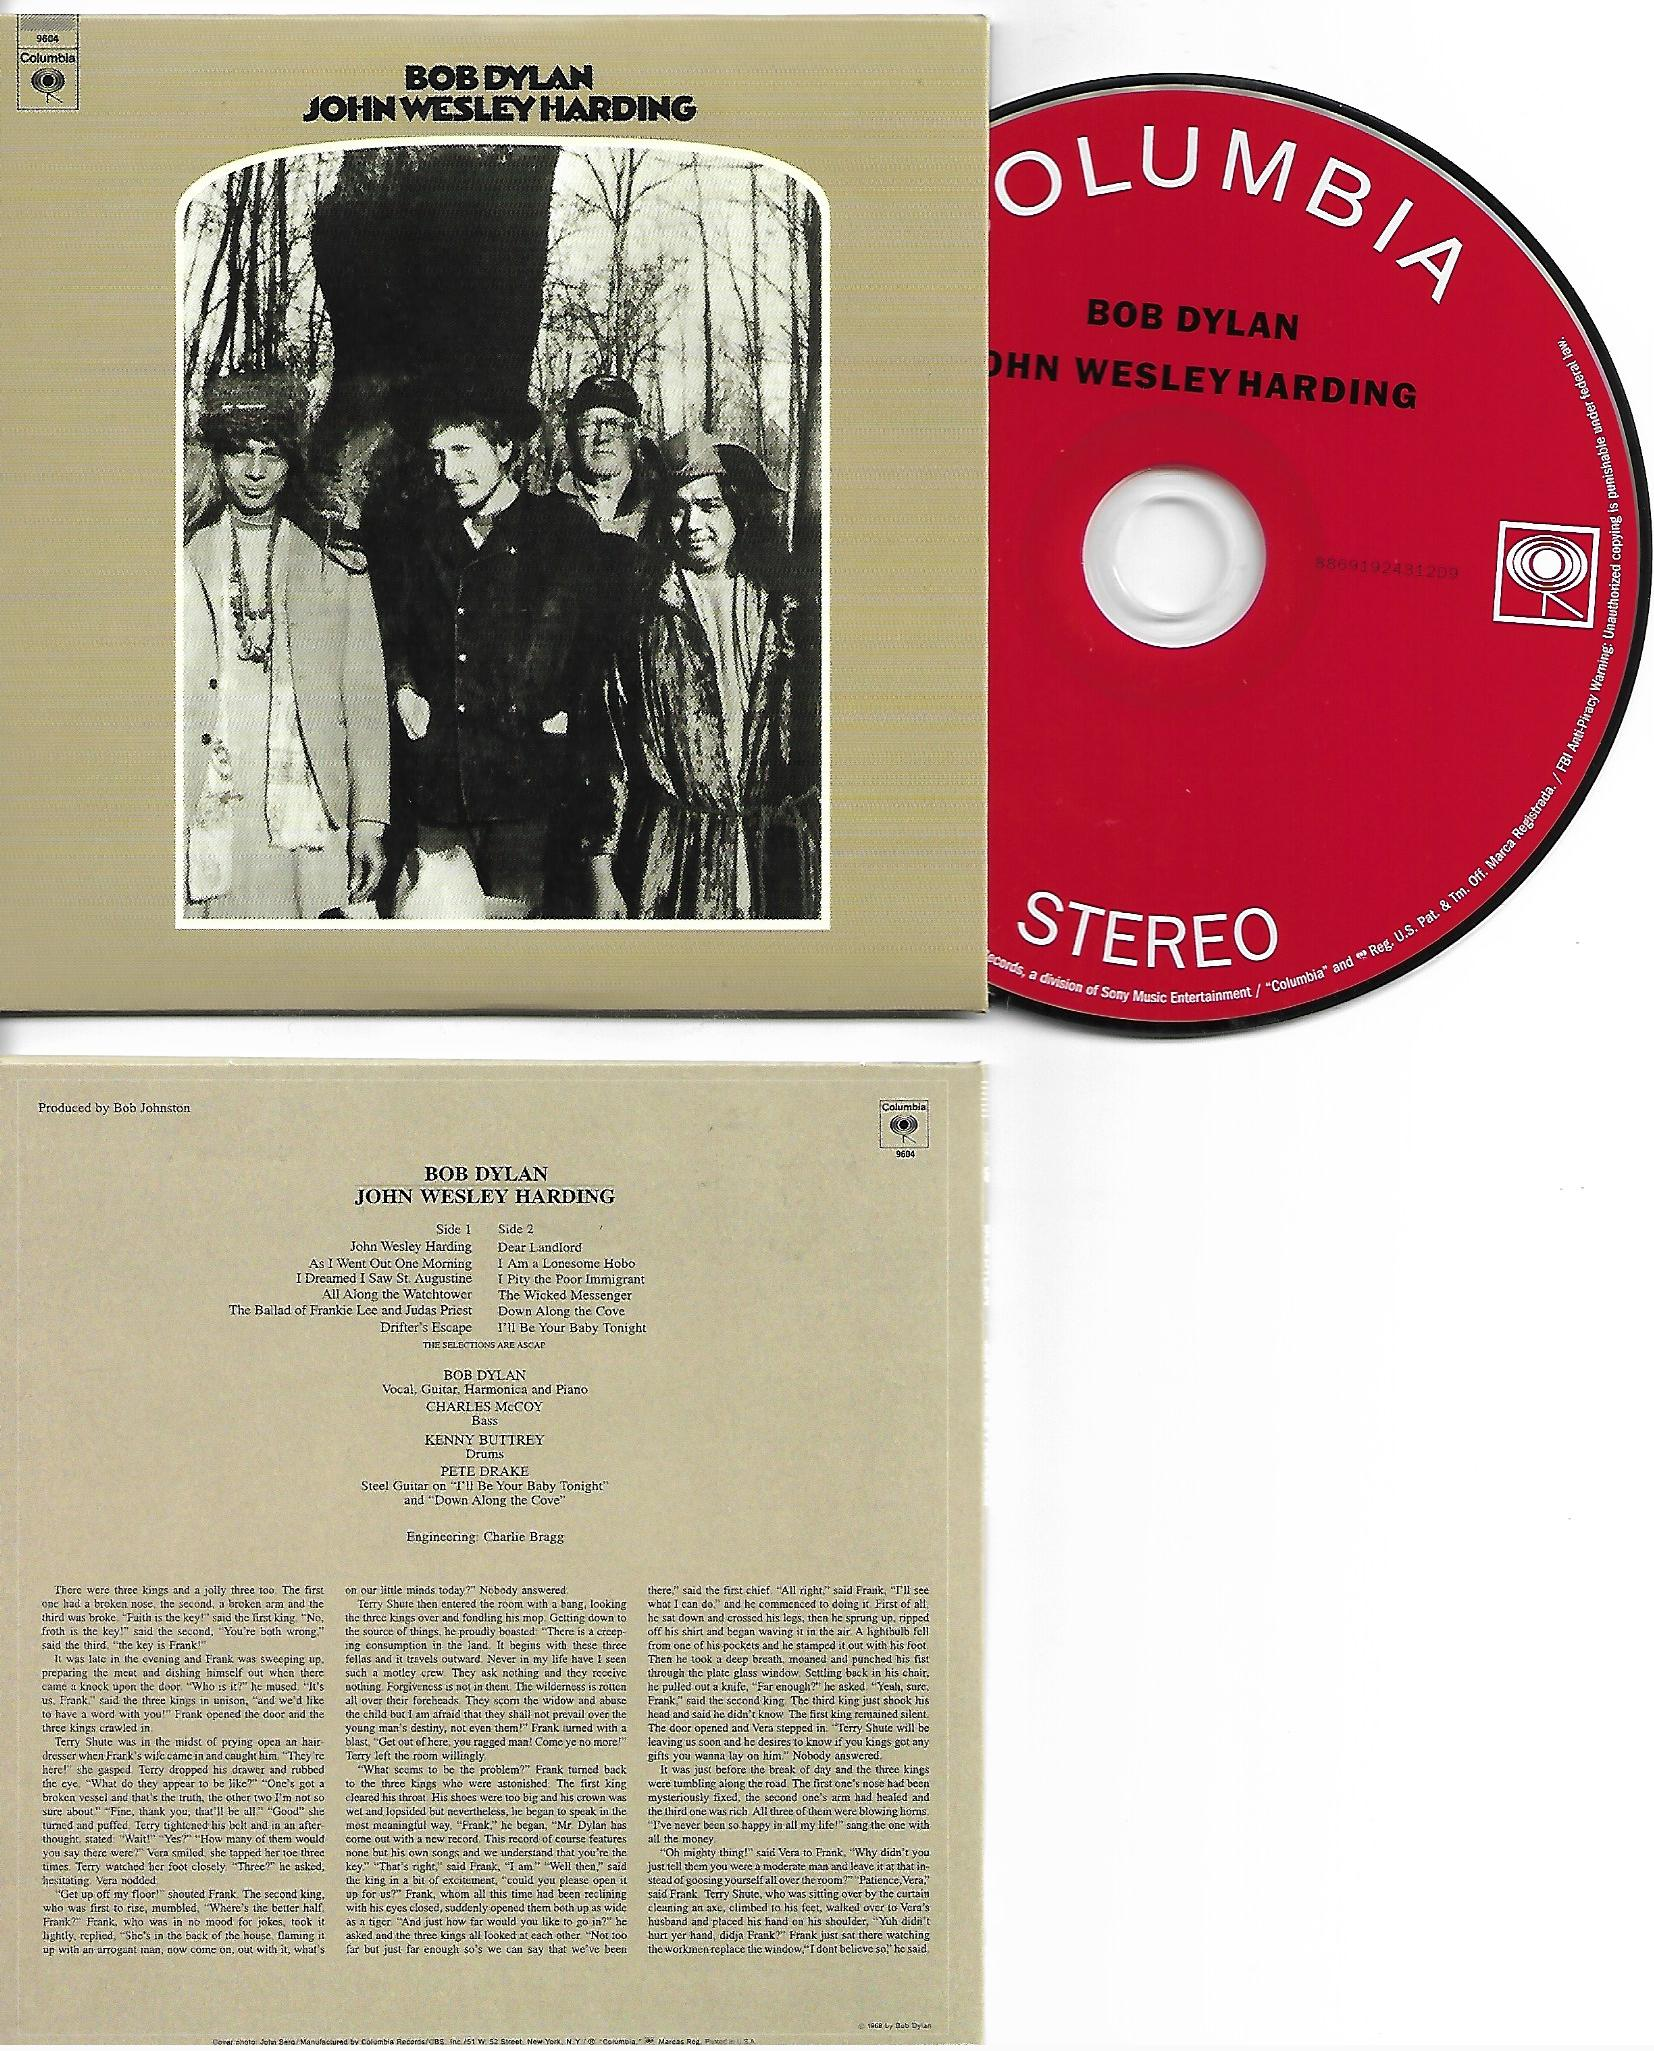 BOB DYLAN - John Wesley Harding 1967 - MINI LP REPLICA CARD BOARD SLEEVE - CD